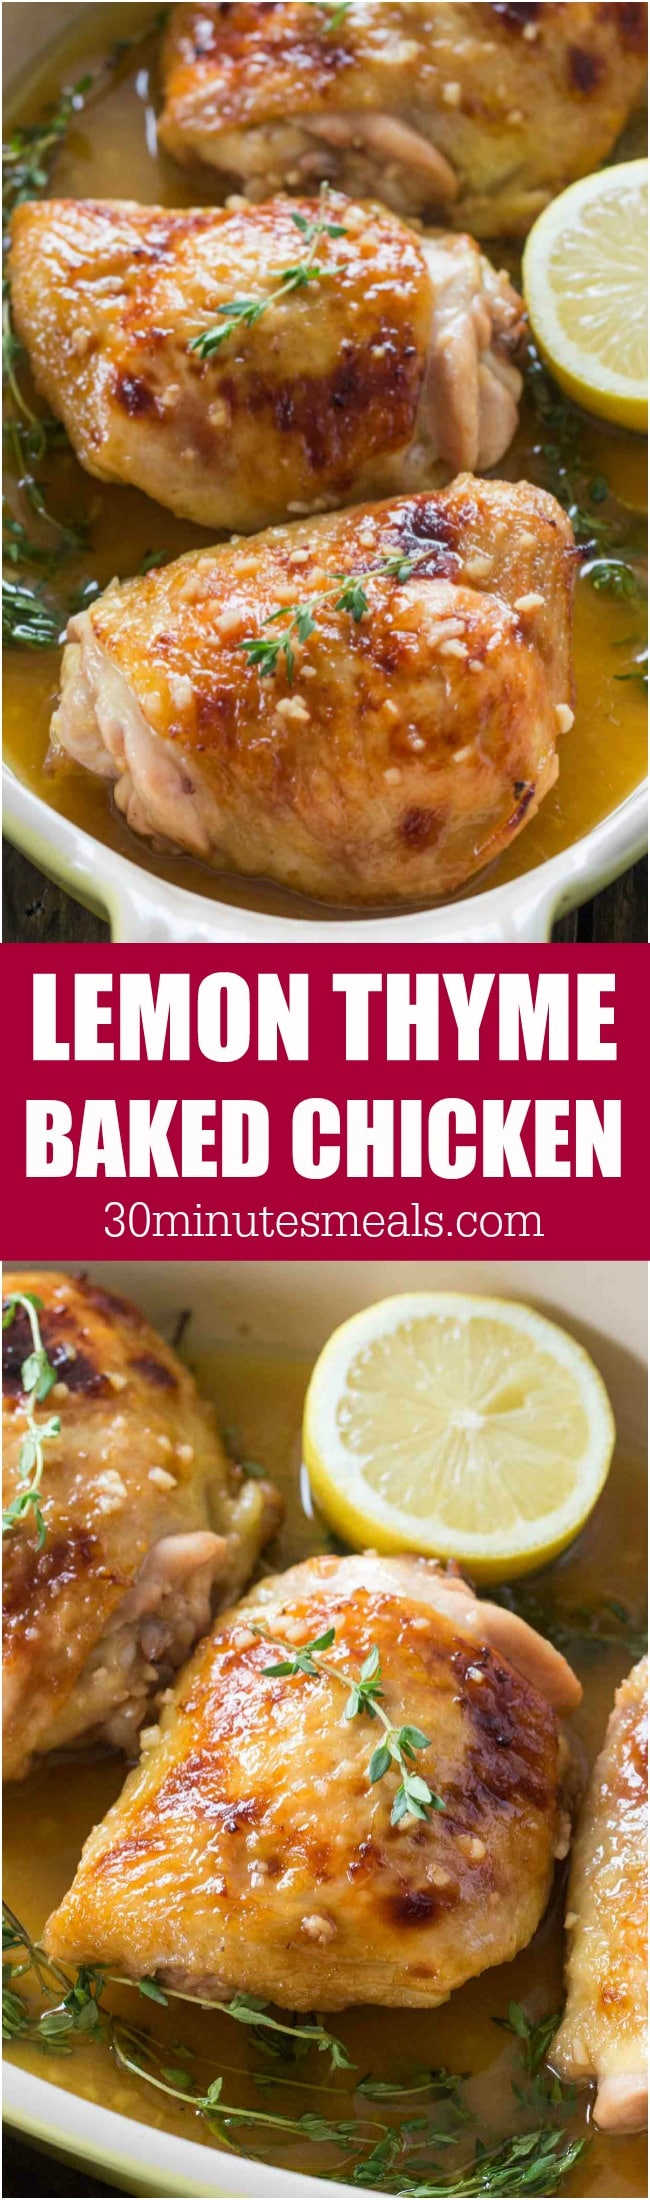 Lemon Thyme Chicken made with just a few ingredients, with a sweet and savory flavor, ready in just 30 minutes in one pan!